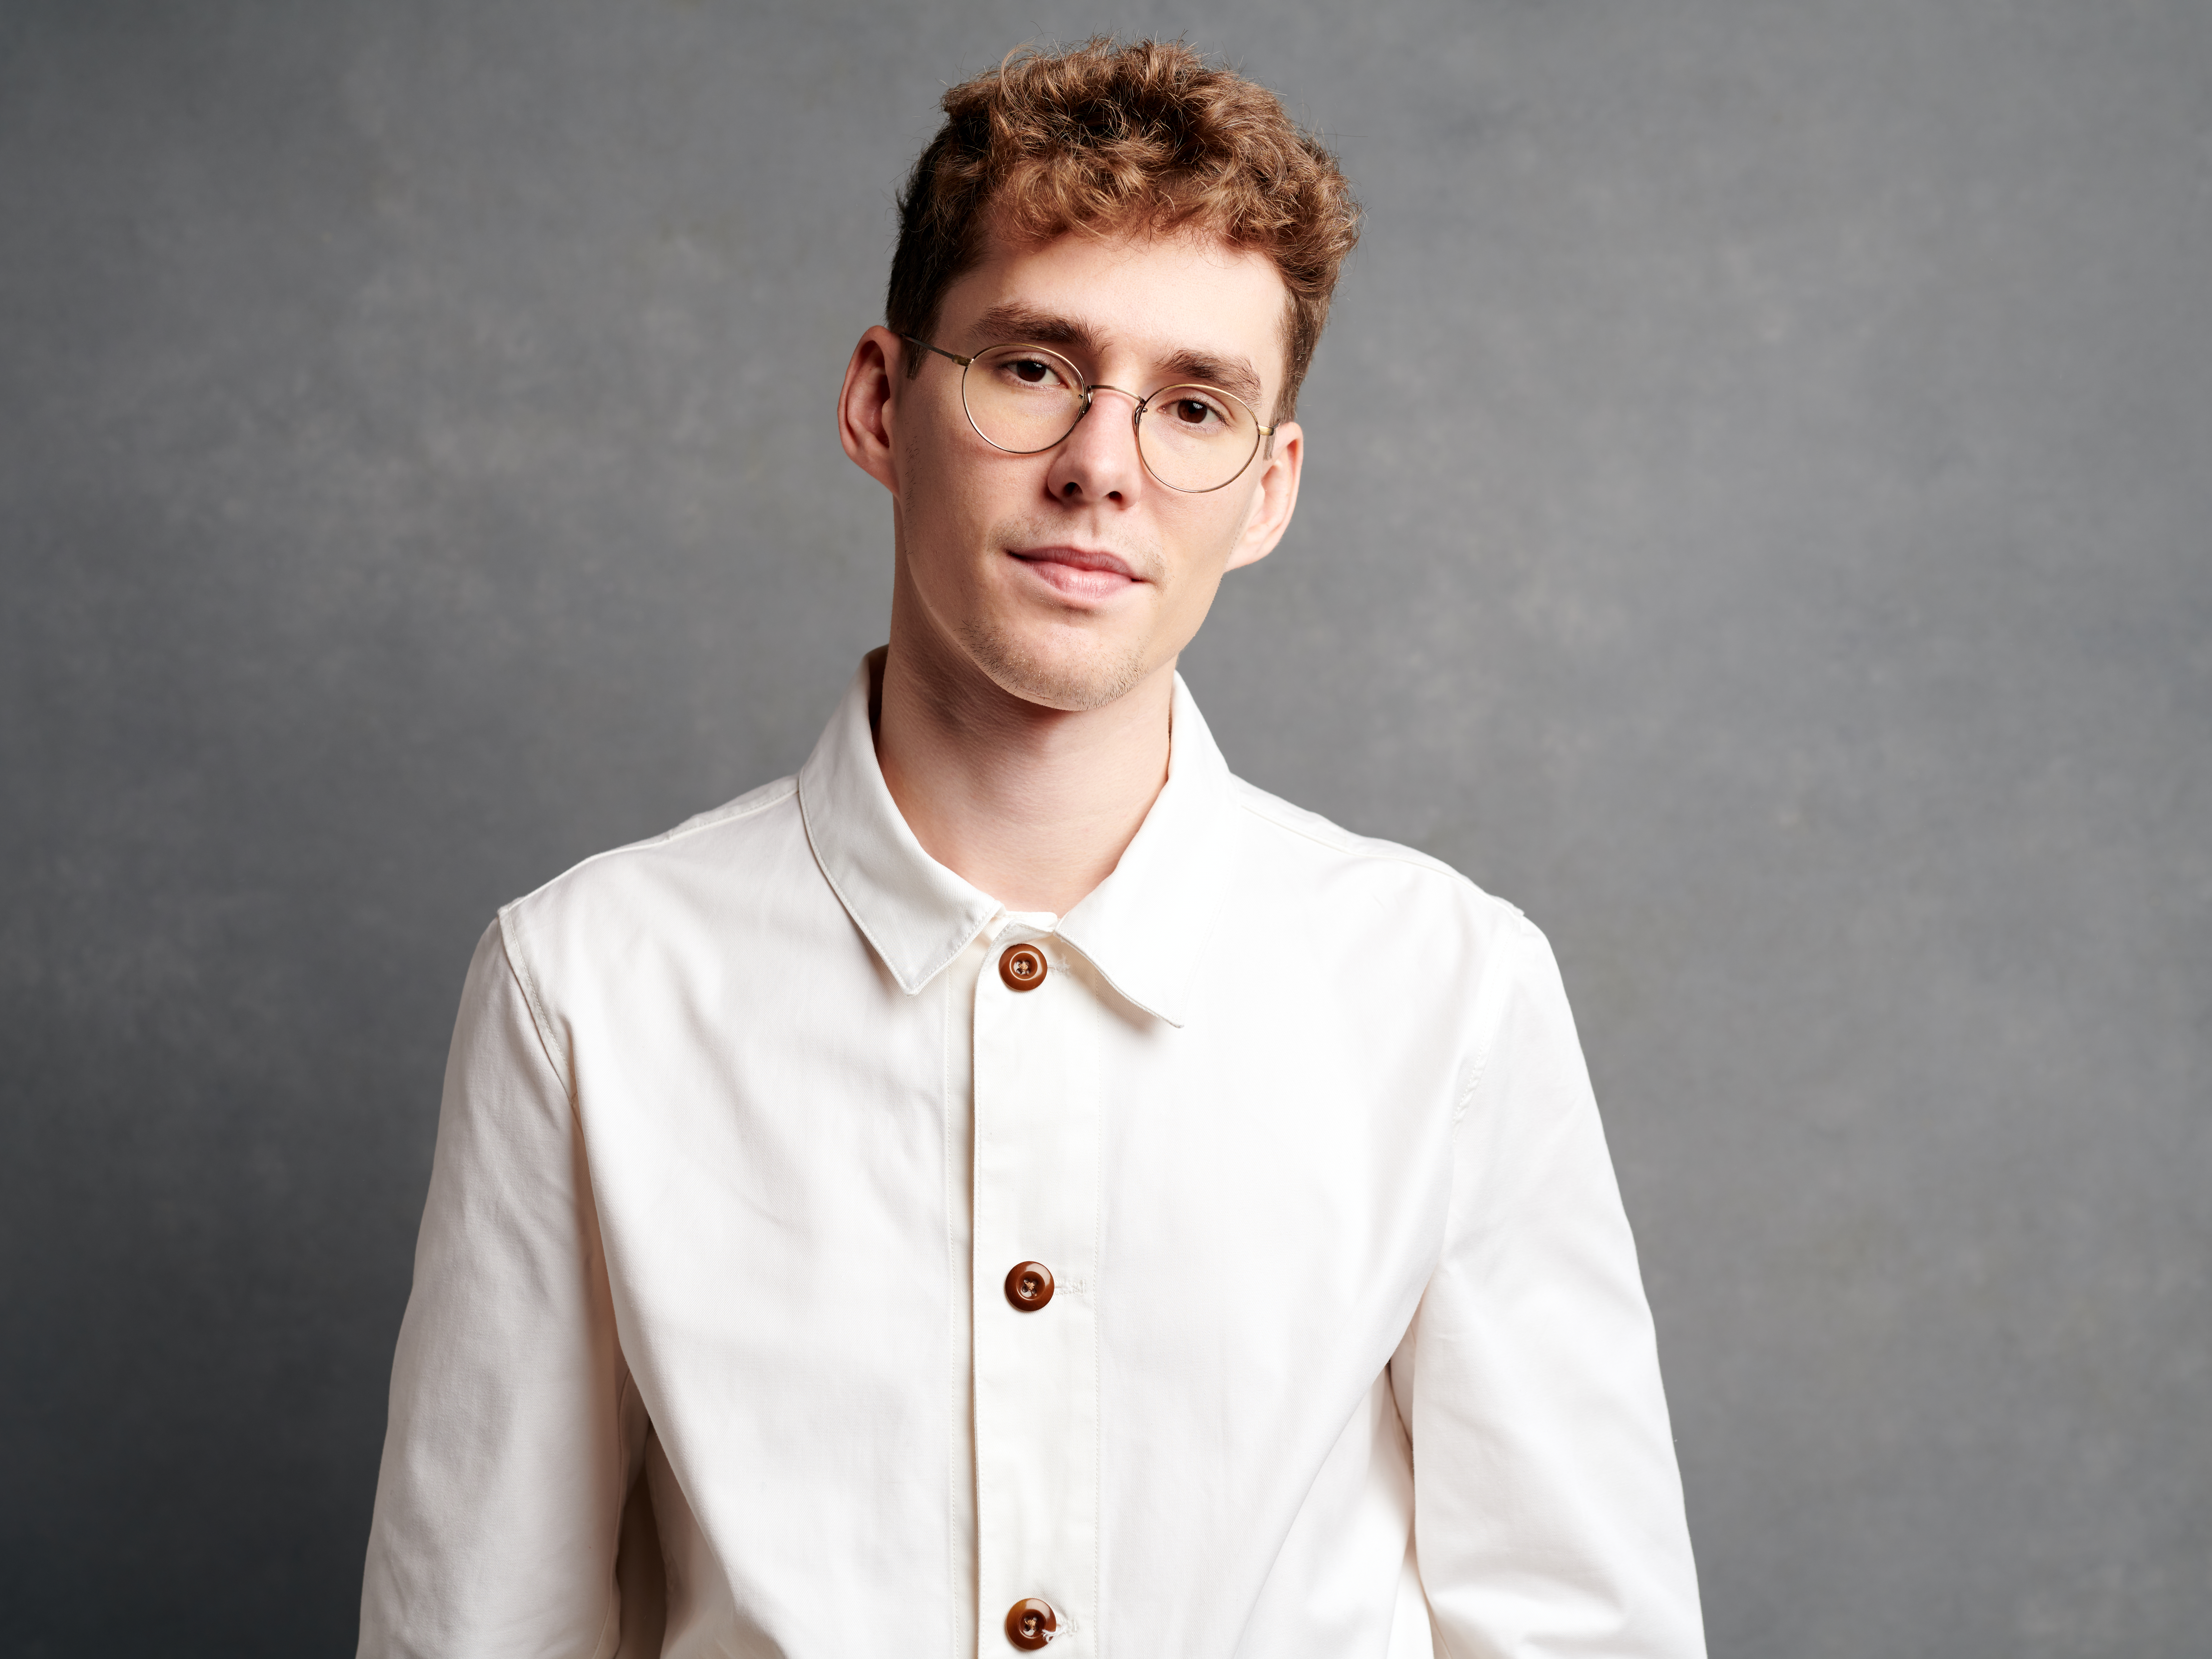 Lost Frequencies performs for Tomorrowland Around the World, hosted on Friday and Saturday, July 16 and 17